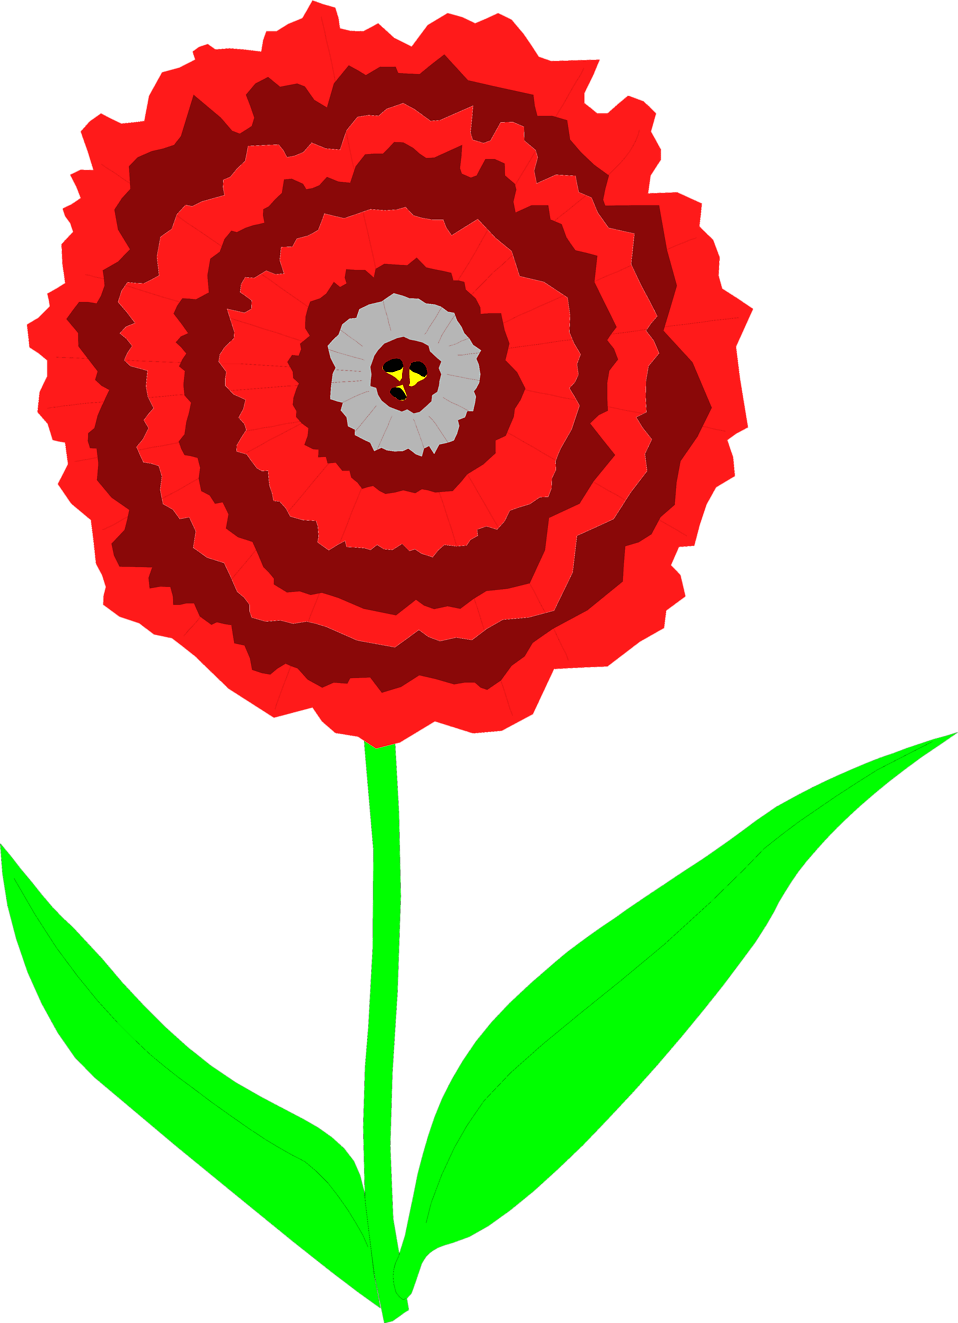 Home Wmf Carnation | Free Stock Photo | Illustration Of A Red